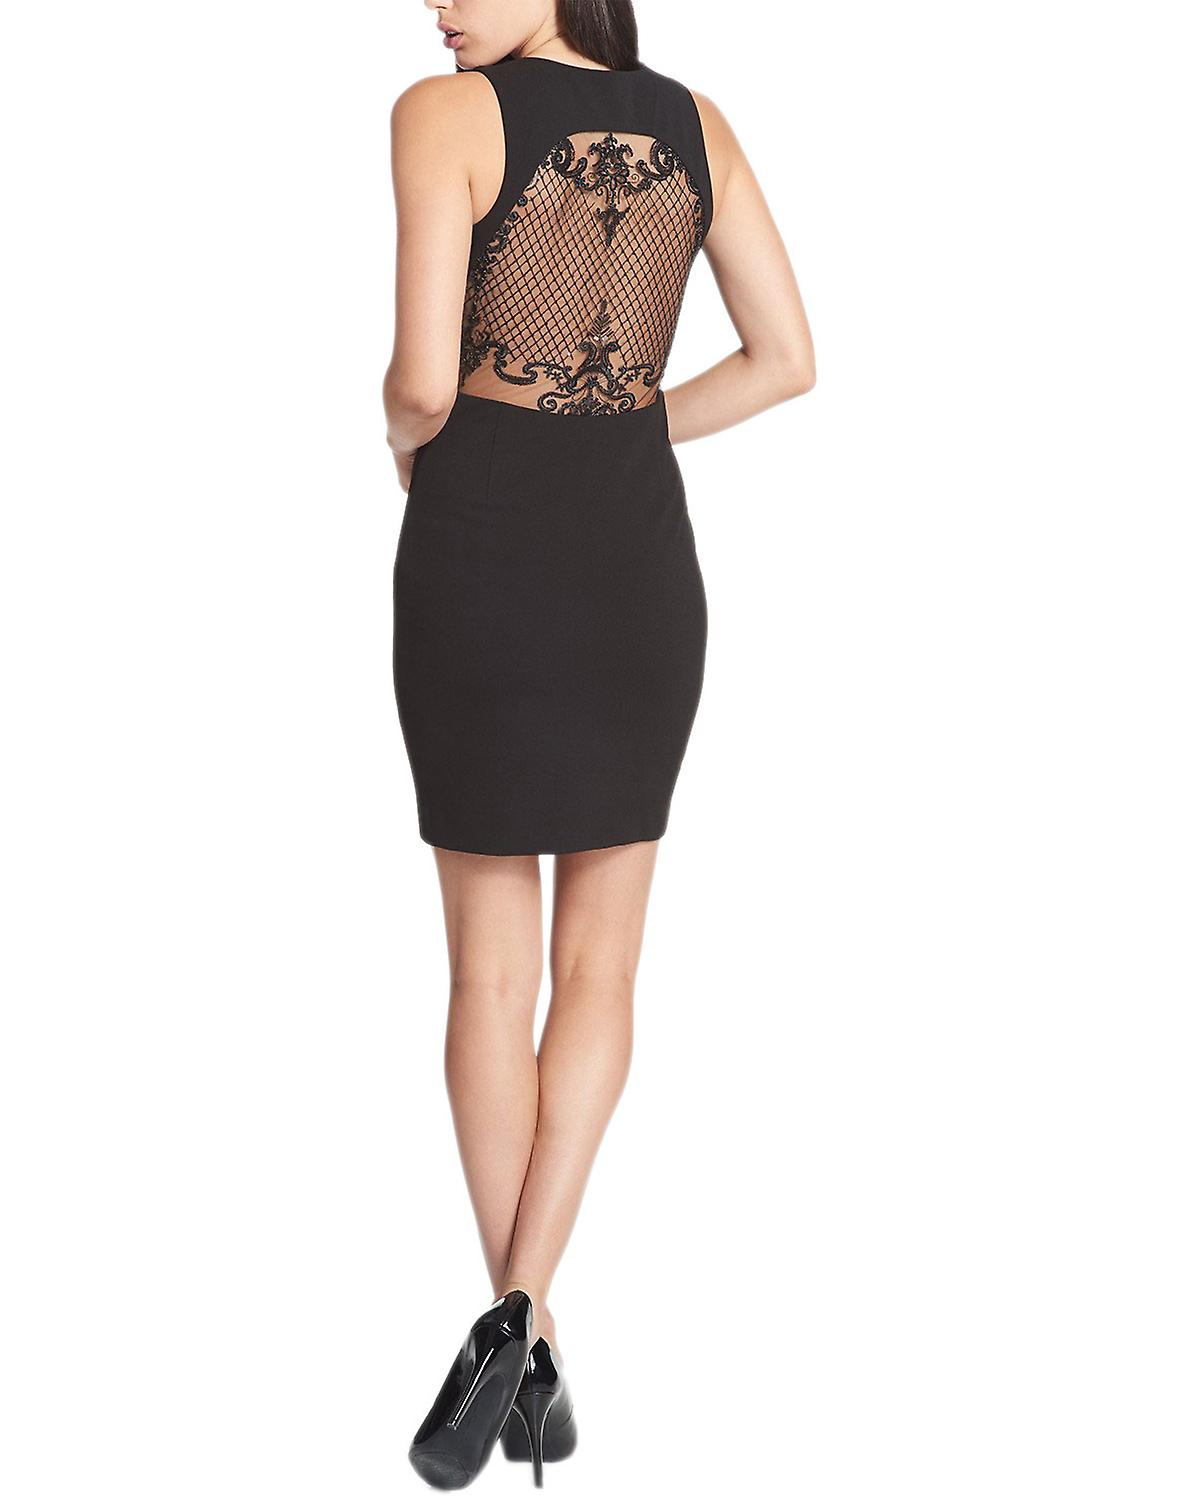 GUESS Sequined Fishnet Back Dress